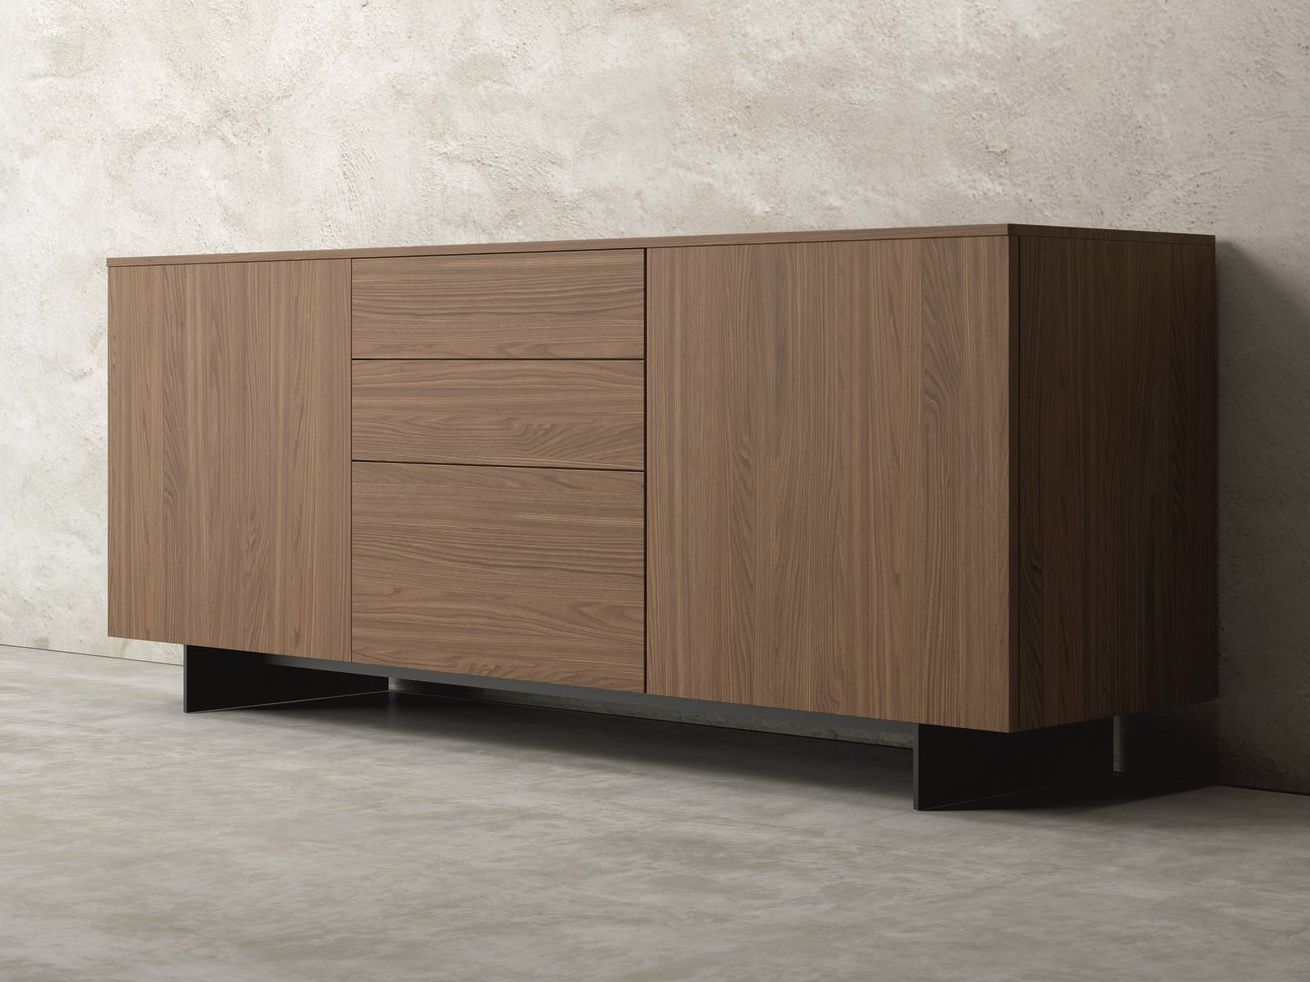 Slim Walnut Sideboard By Dall Agnese Design Imago Design Massimo